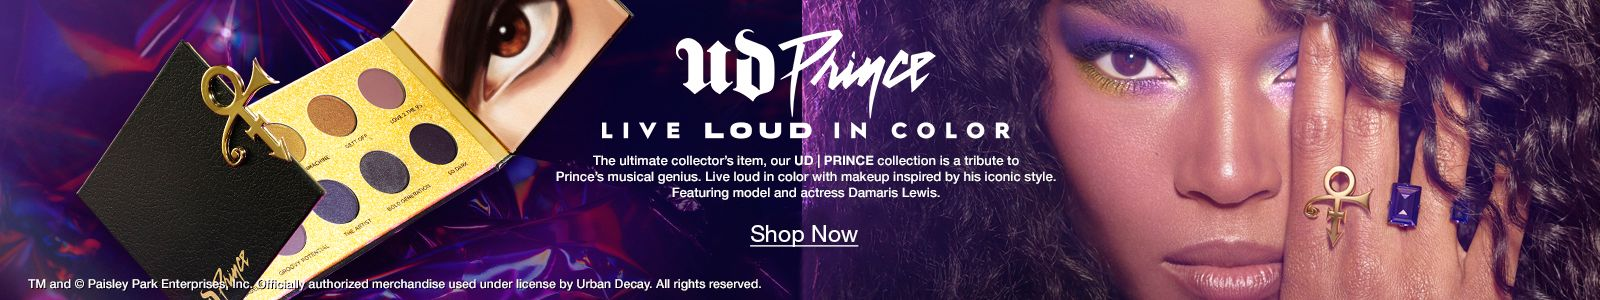 Ud Prince, Live Loud In Color